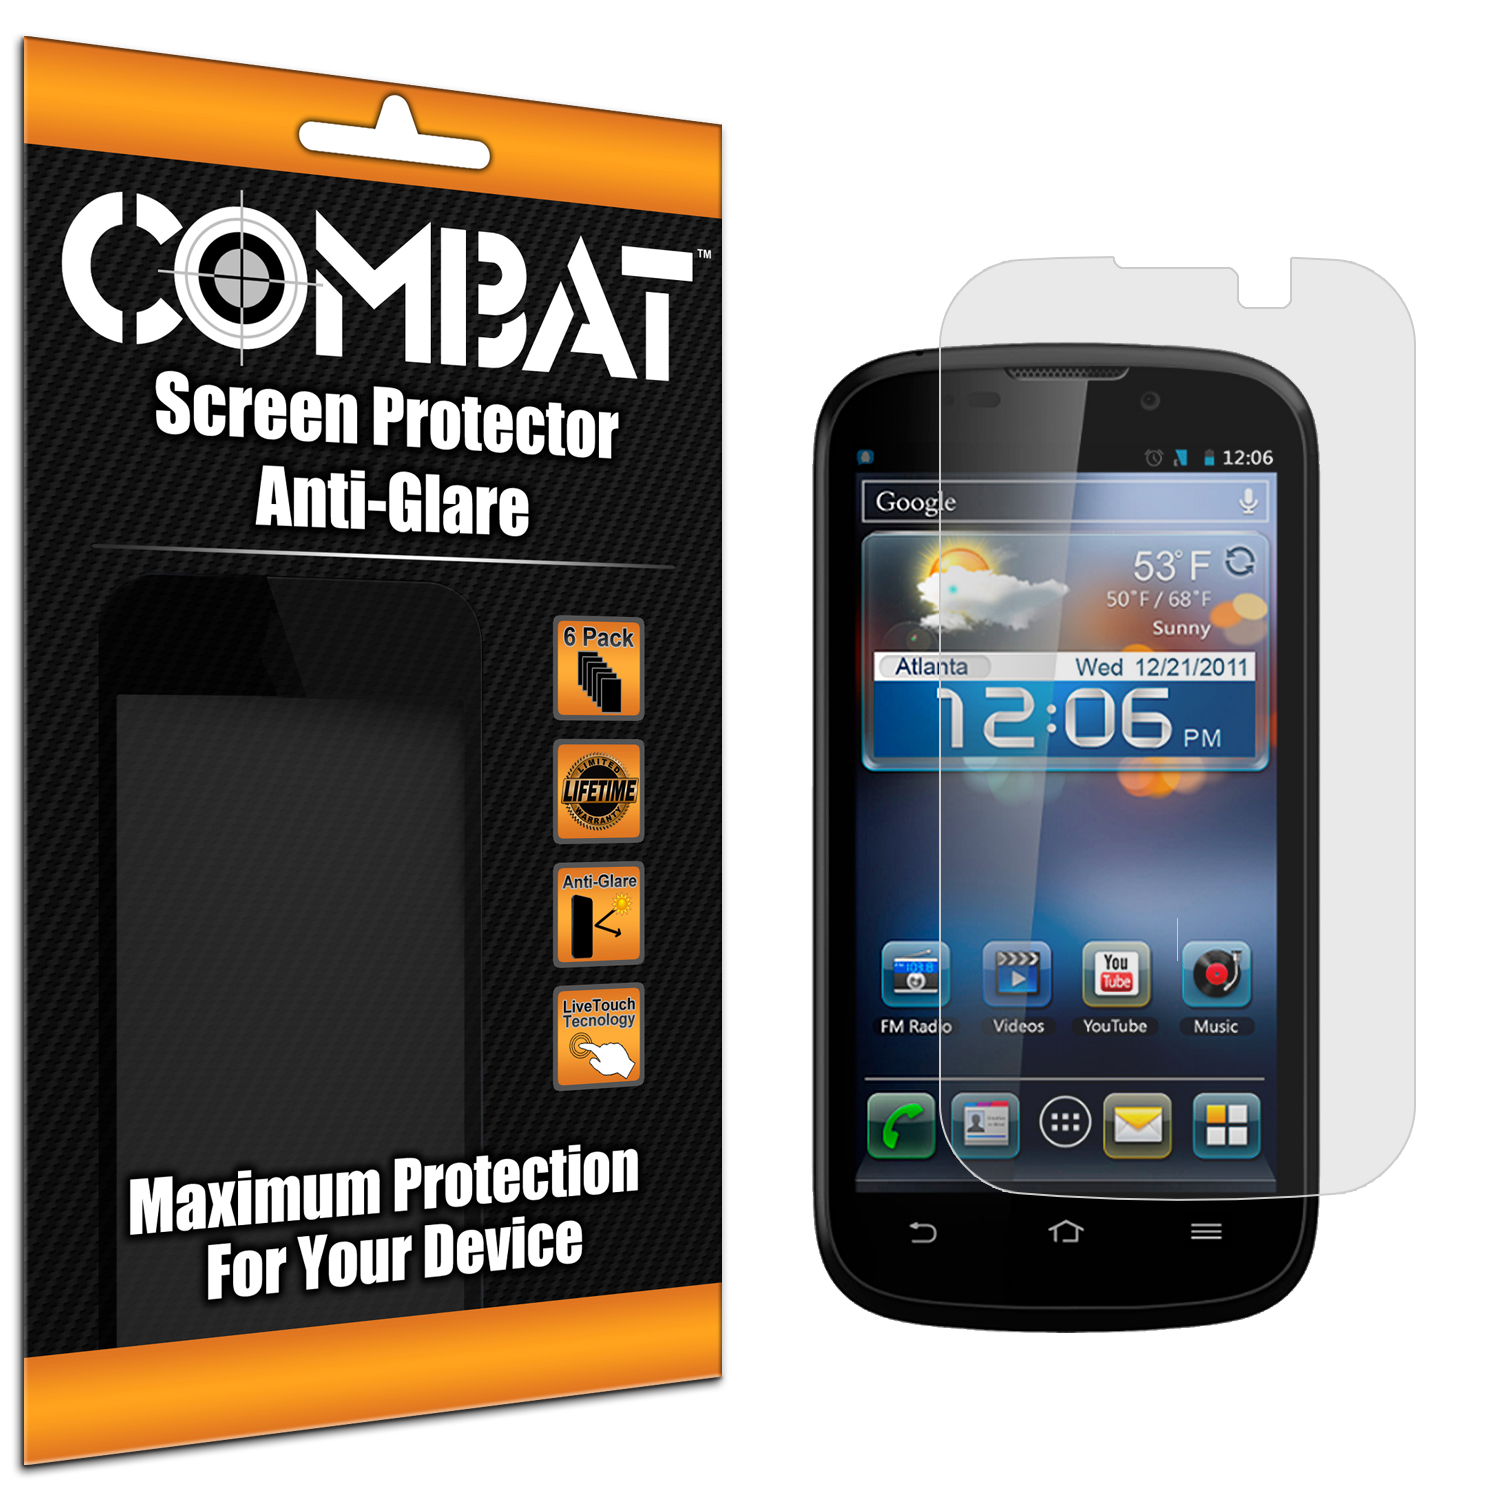 ZTE Awe N800 Combat 6 Pack Anti-Glare Matte Screen Protector